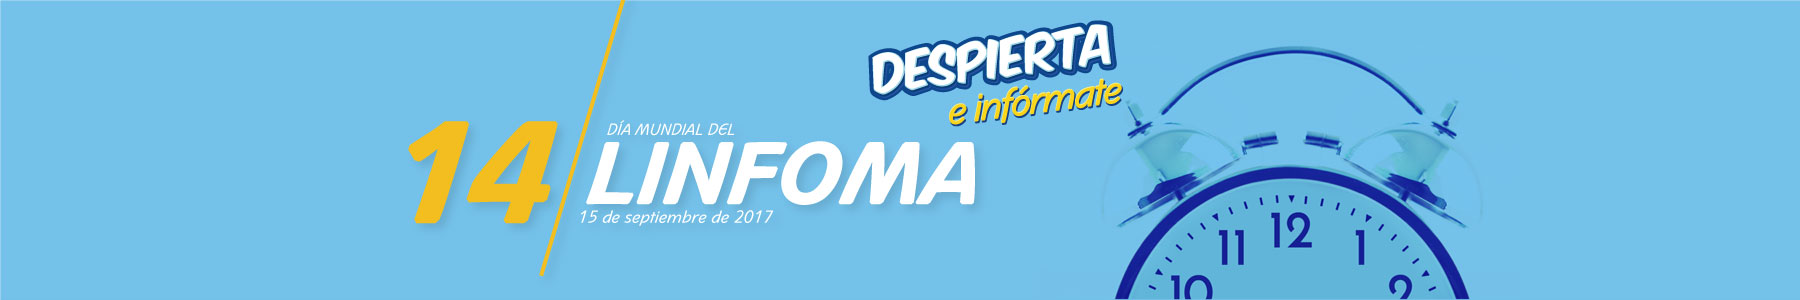 banner-aeal-linfoma-2017